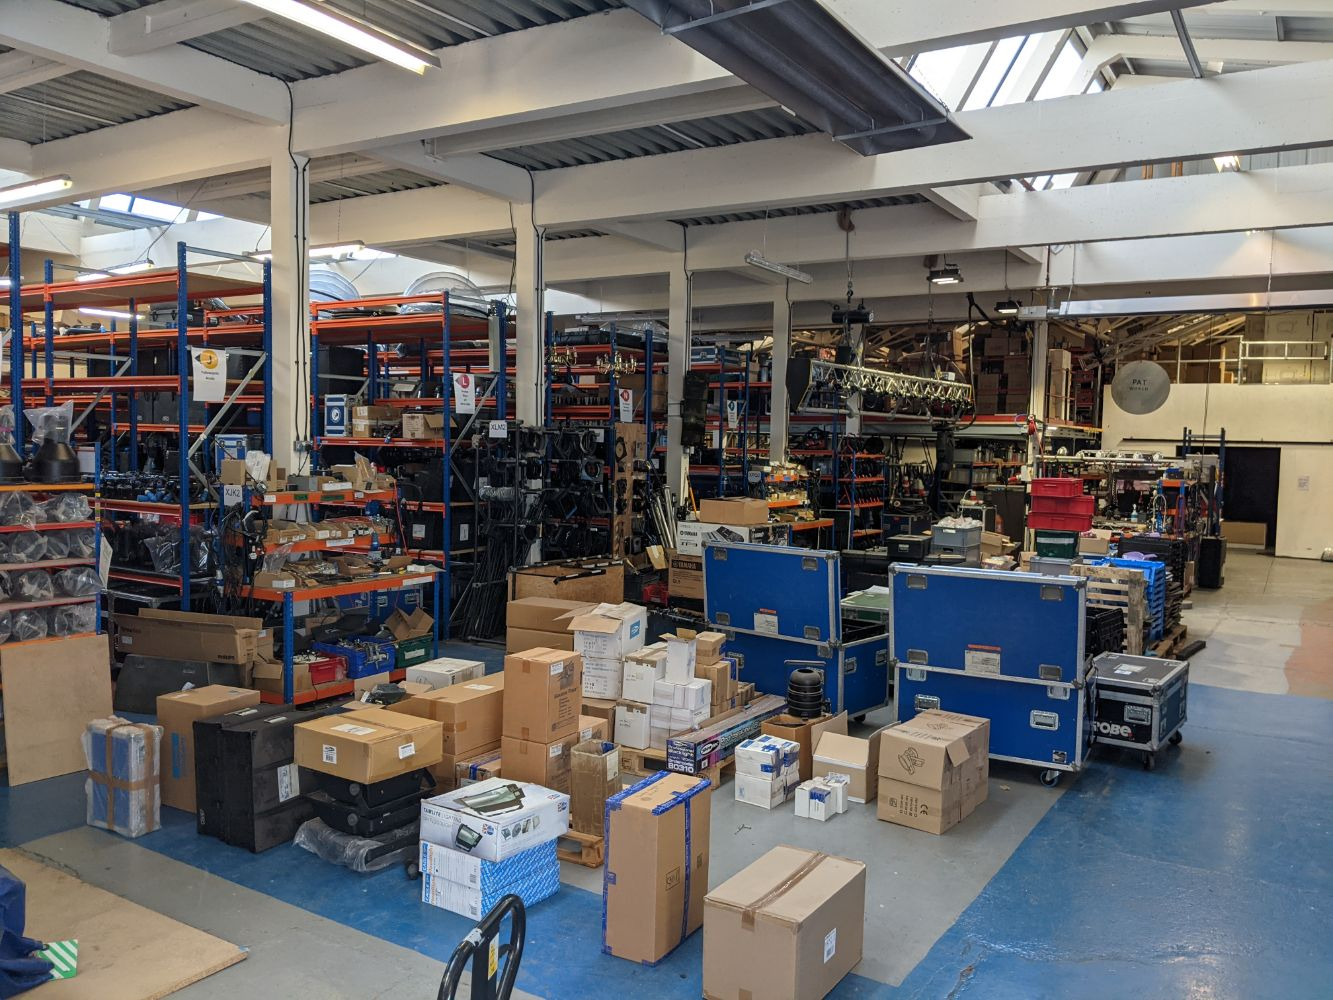 Assets Previously Employed by Enlightened Lighting Ltd, Consistently Maintained Equipment Now Surplus to the Ongoing Business Requirements